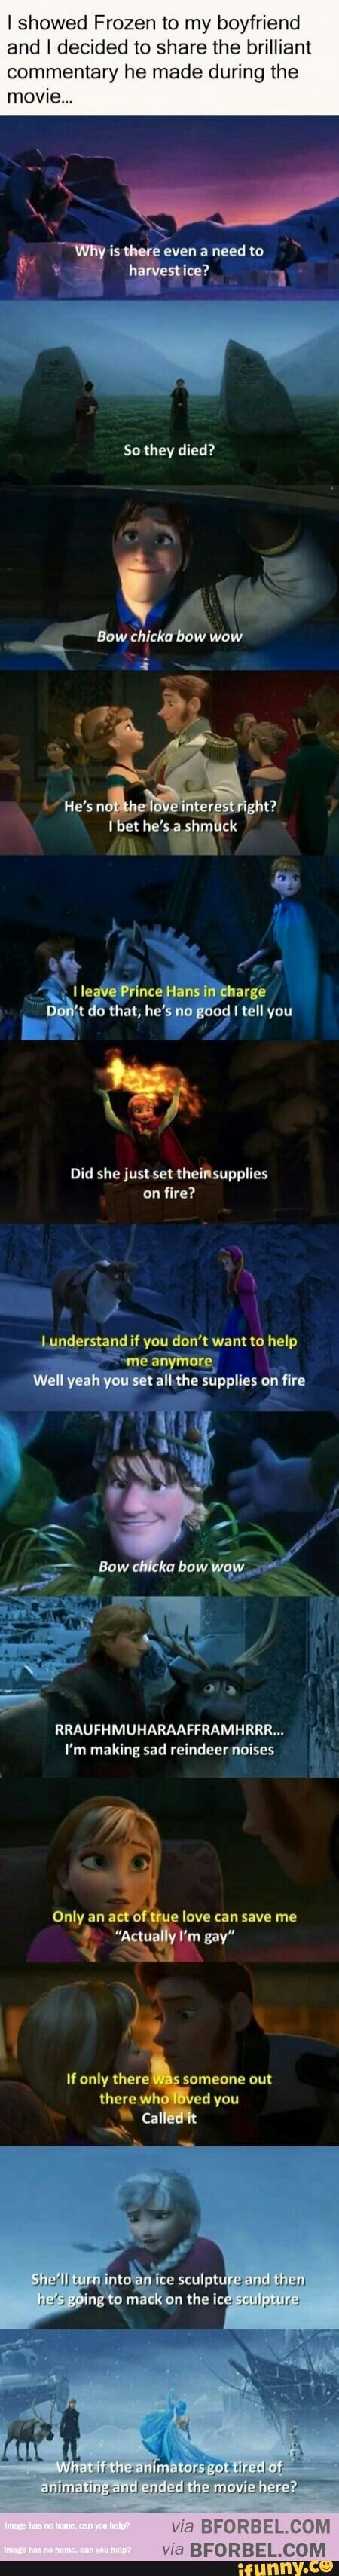 I showed Frozen to my boyfriend and I decided to share the brilliant commentary he made during the movie,.. - )